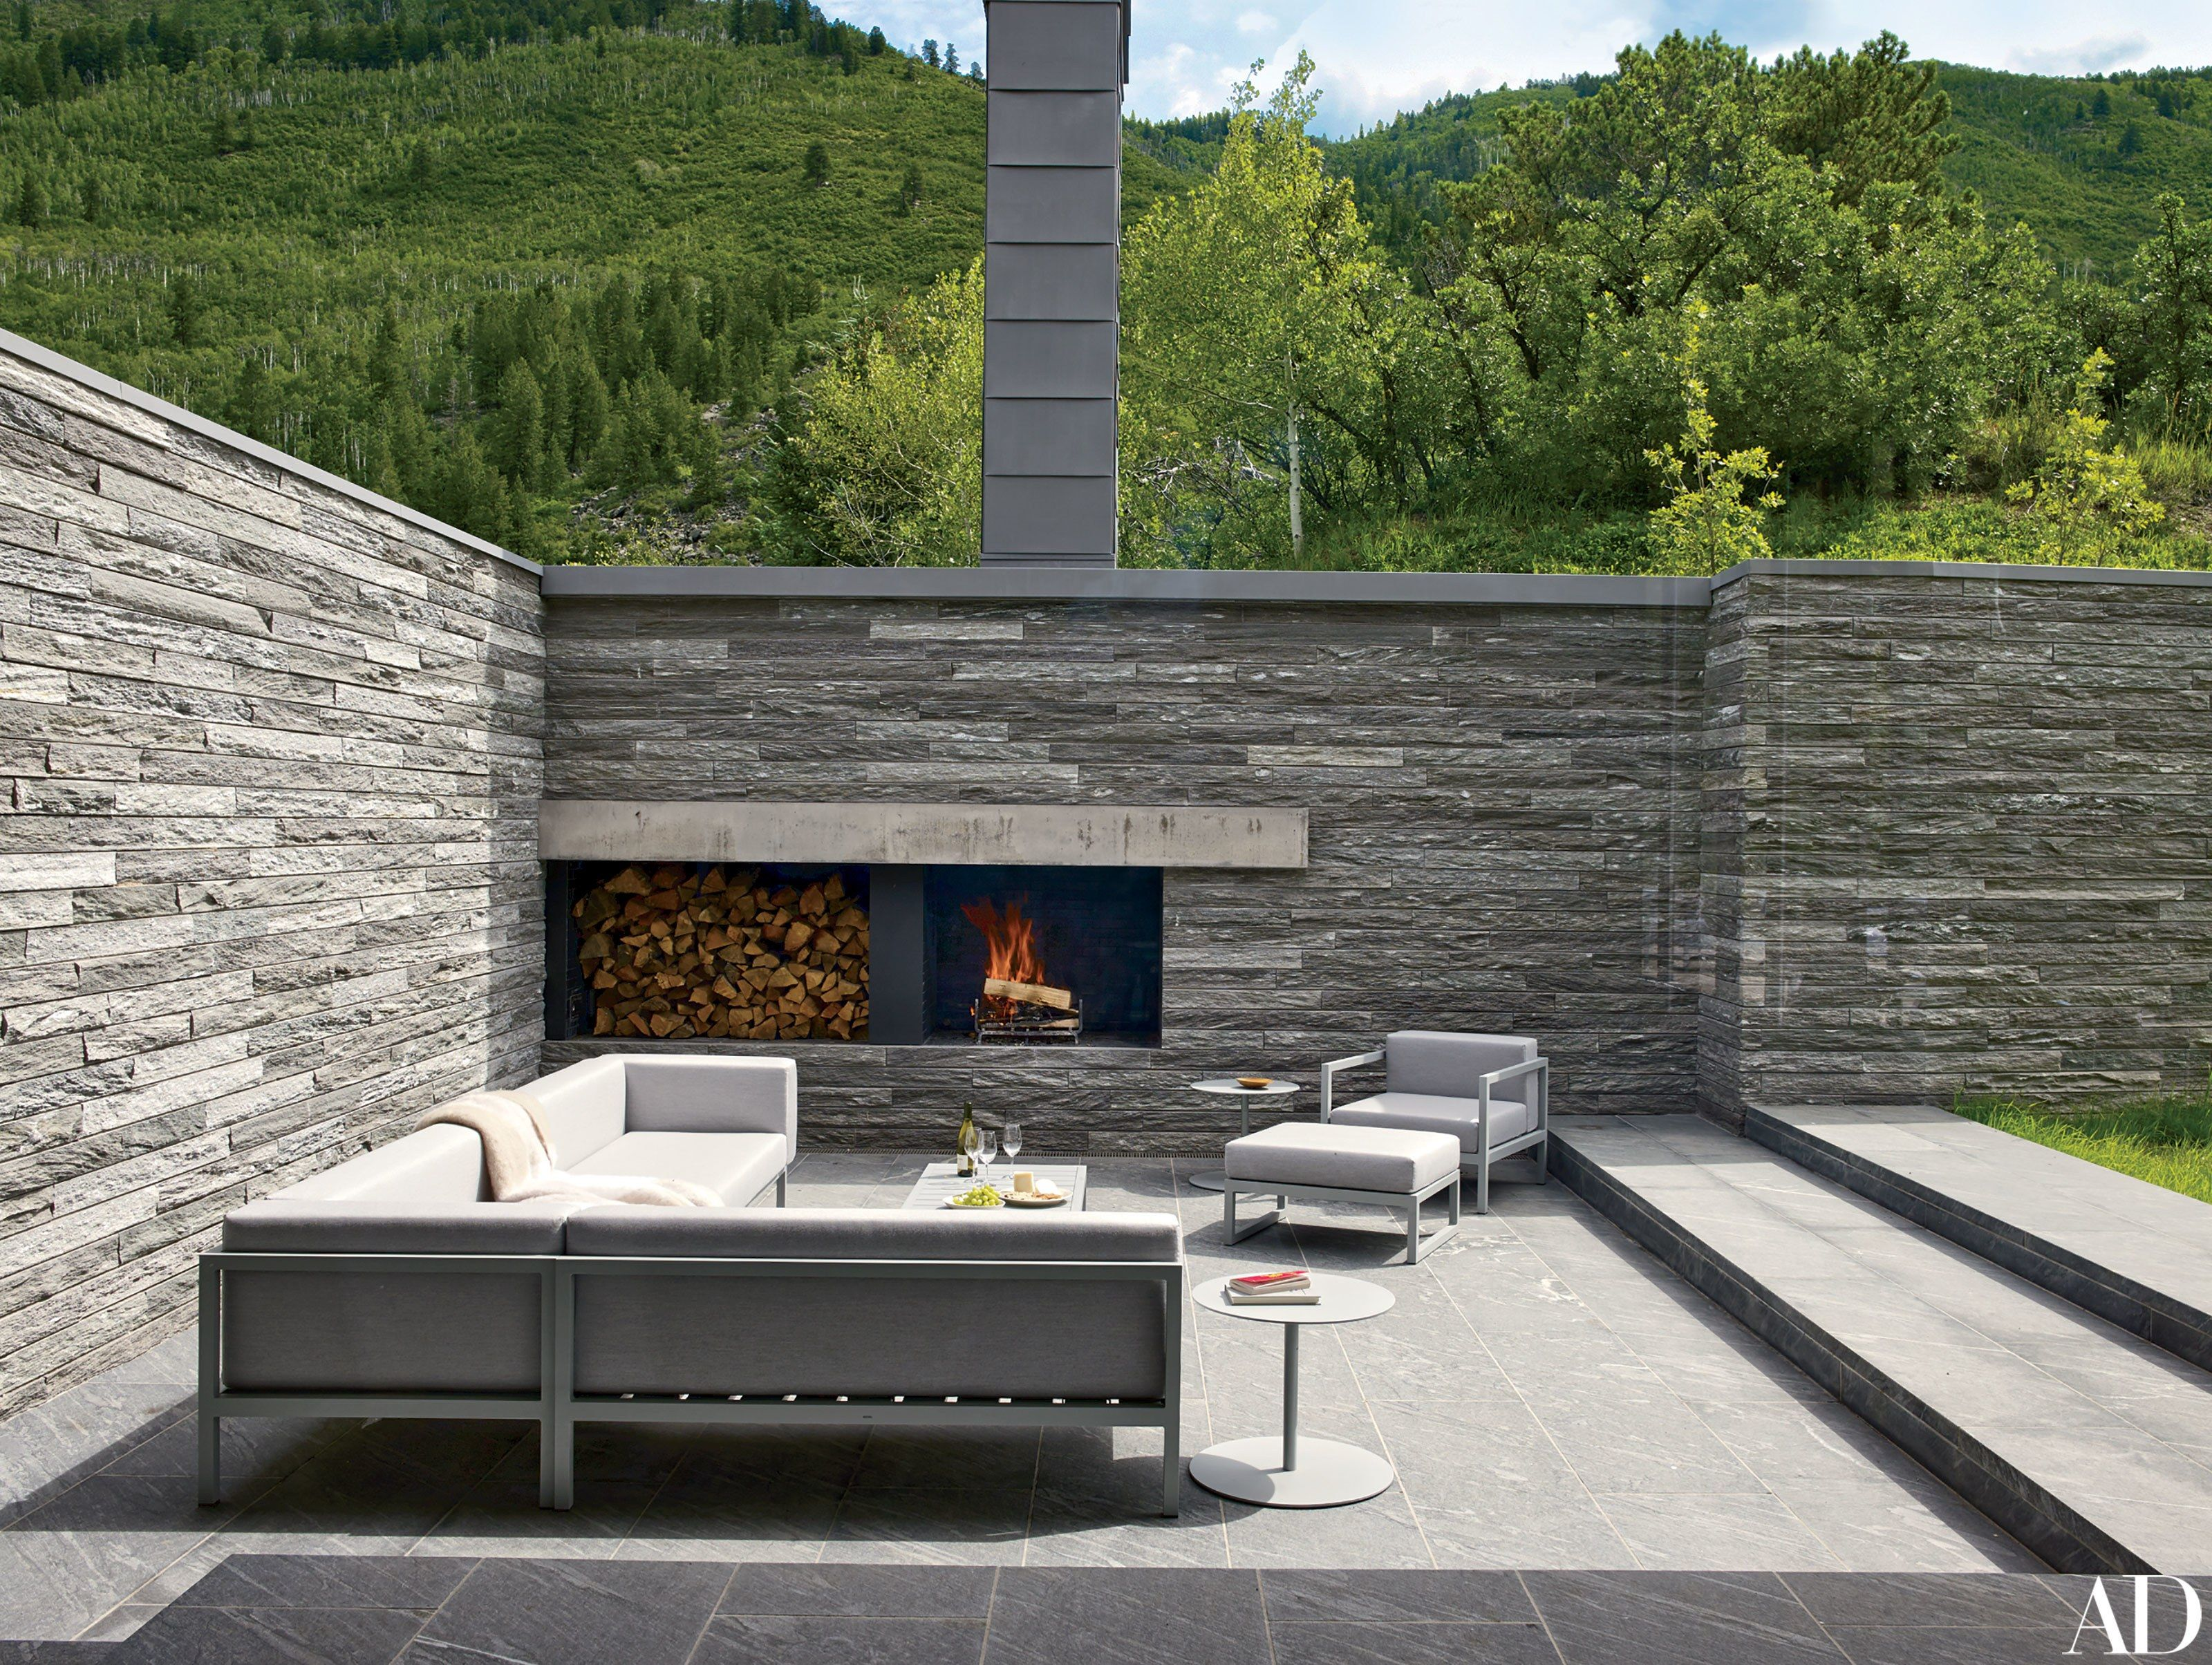 Home front bekommen design an aspen home with spectacular views  architectural digest view